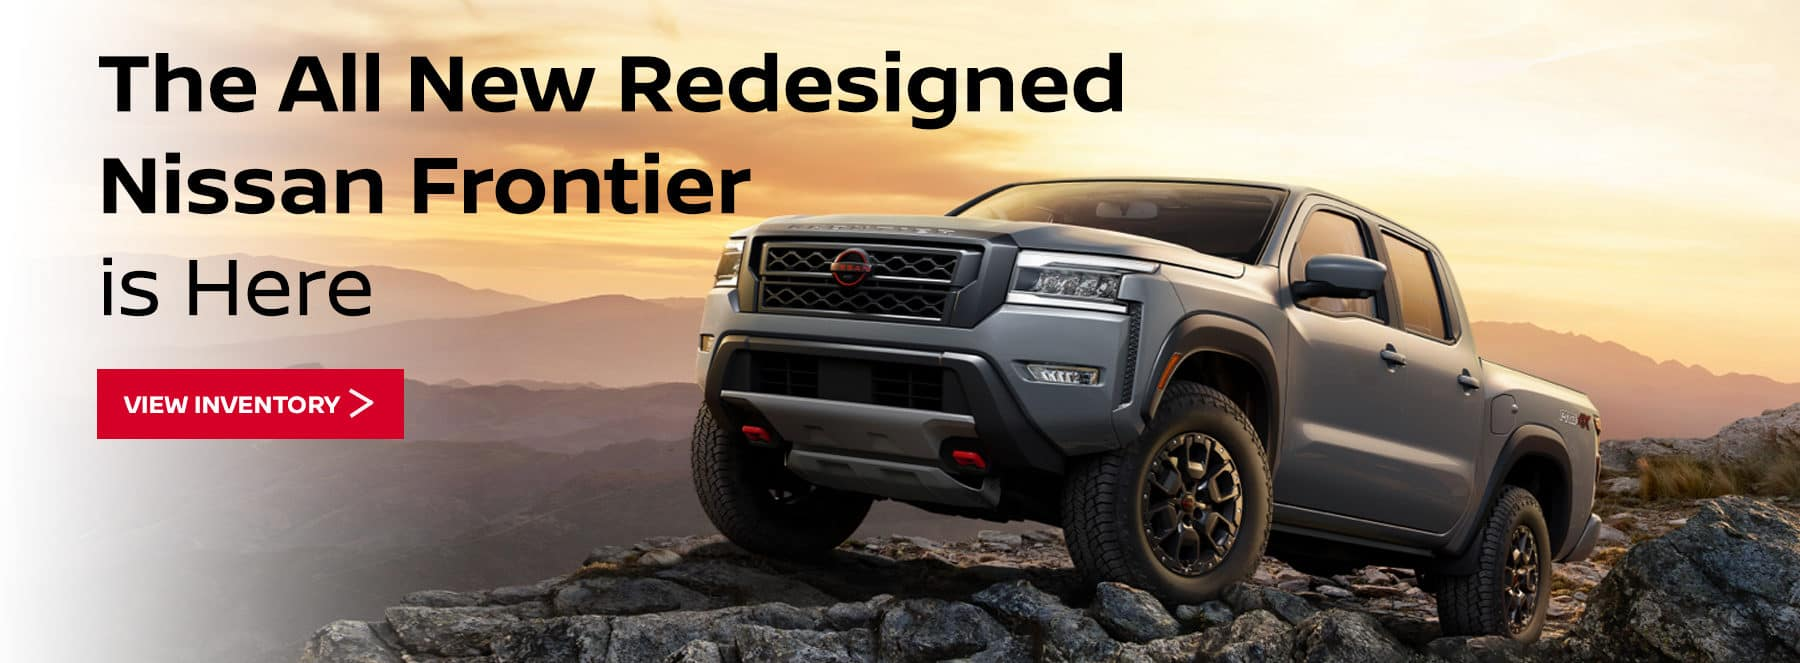 The All New Redesigned Nissan Frontier is Here